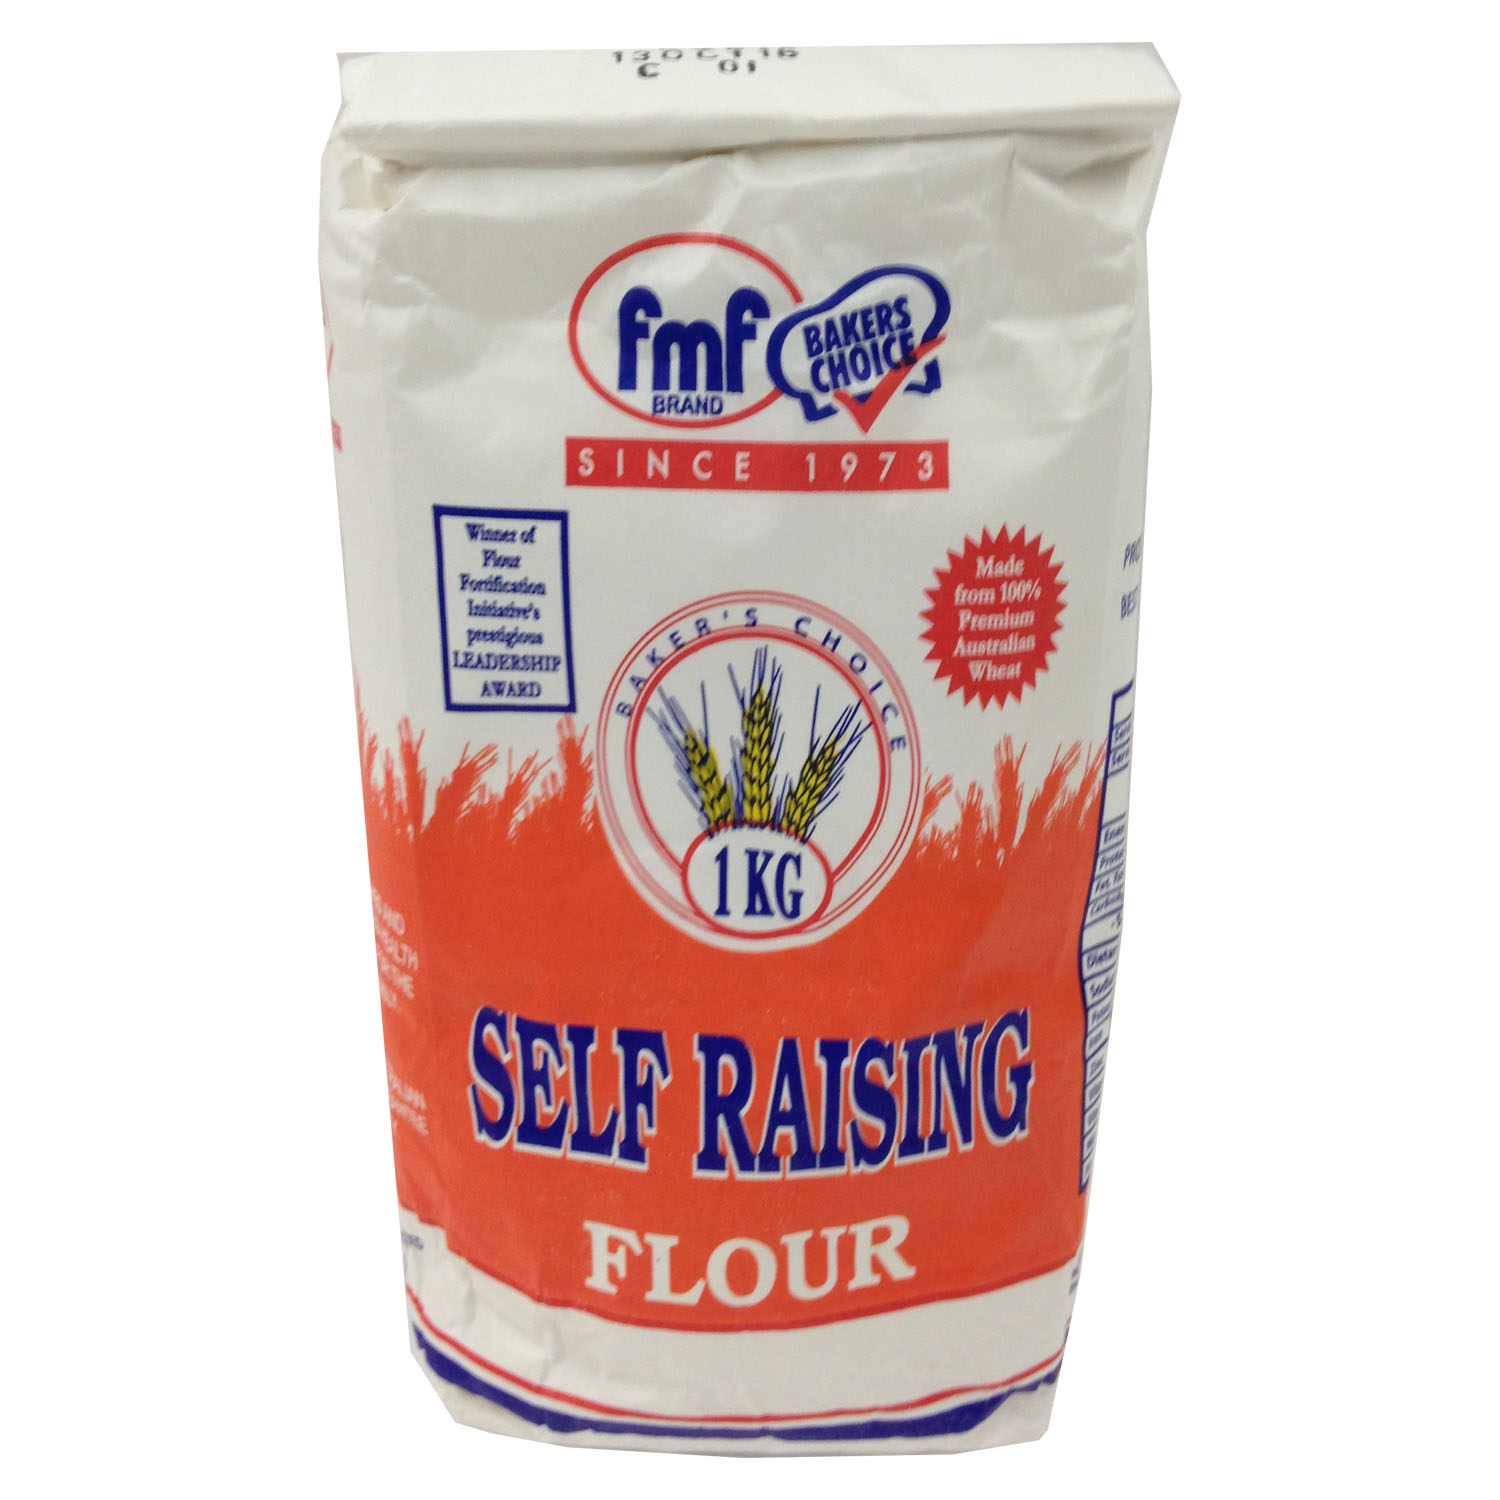 FMF Self Raising Flour 1kg